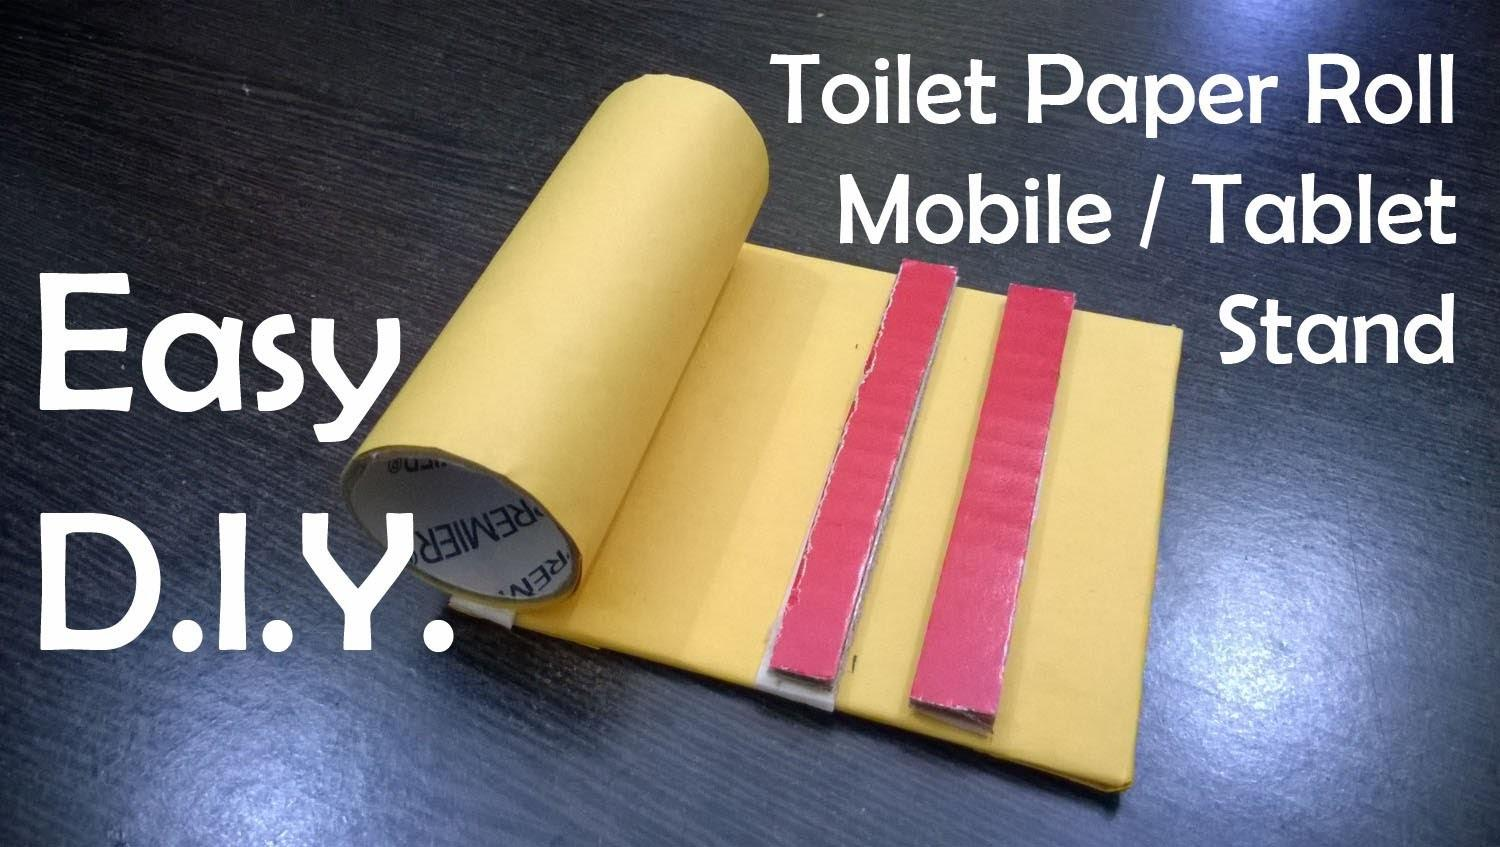 Diy Toilet Paper Roll Mobile Tablet Stand